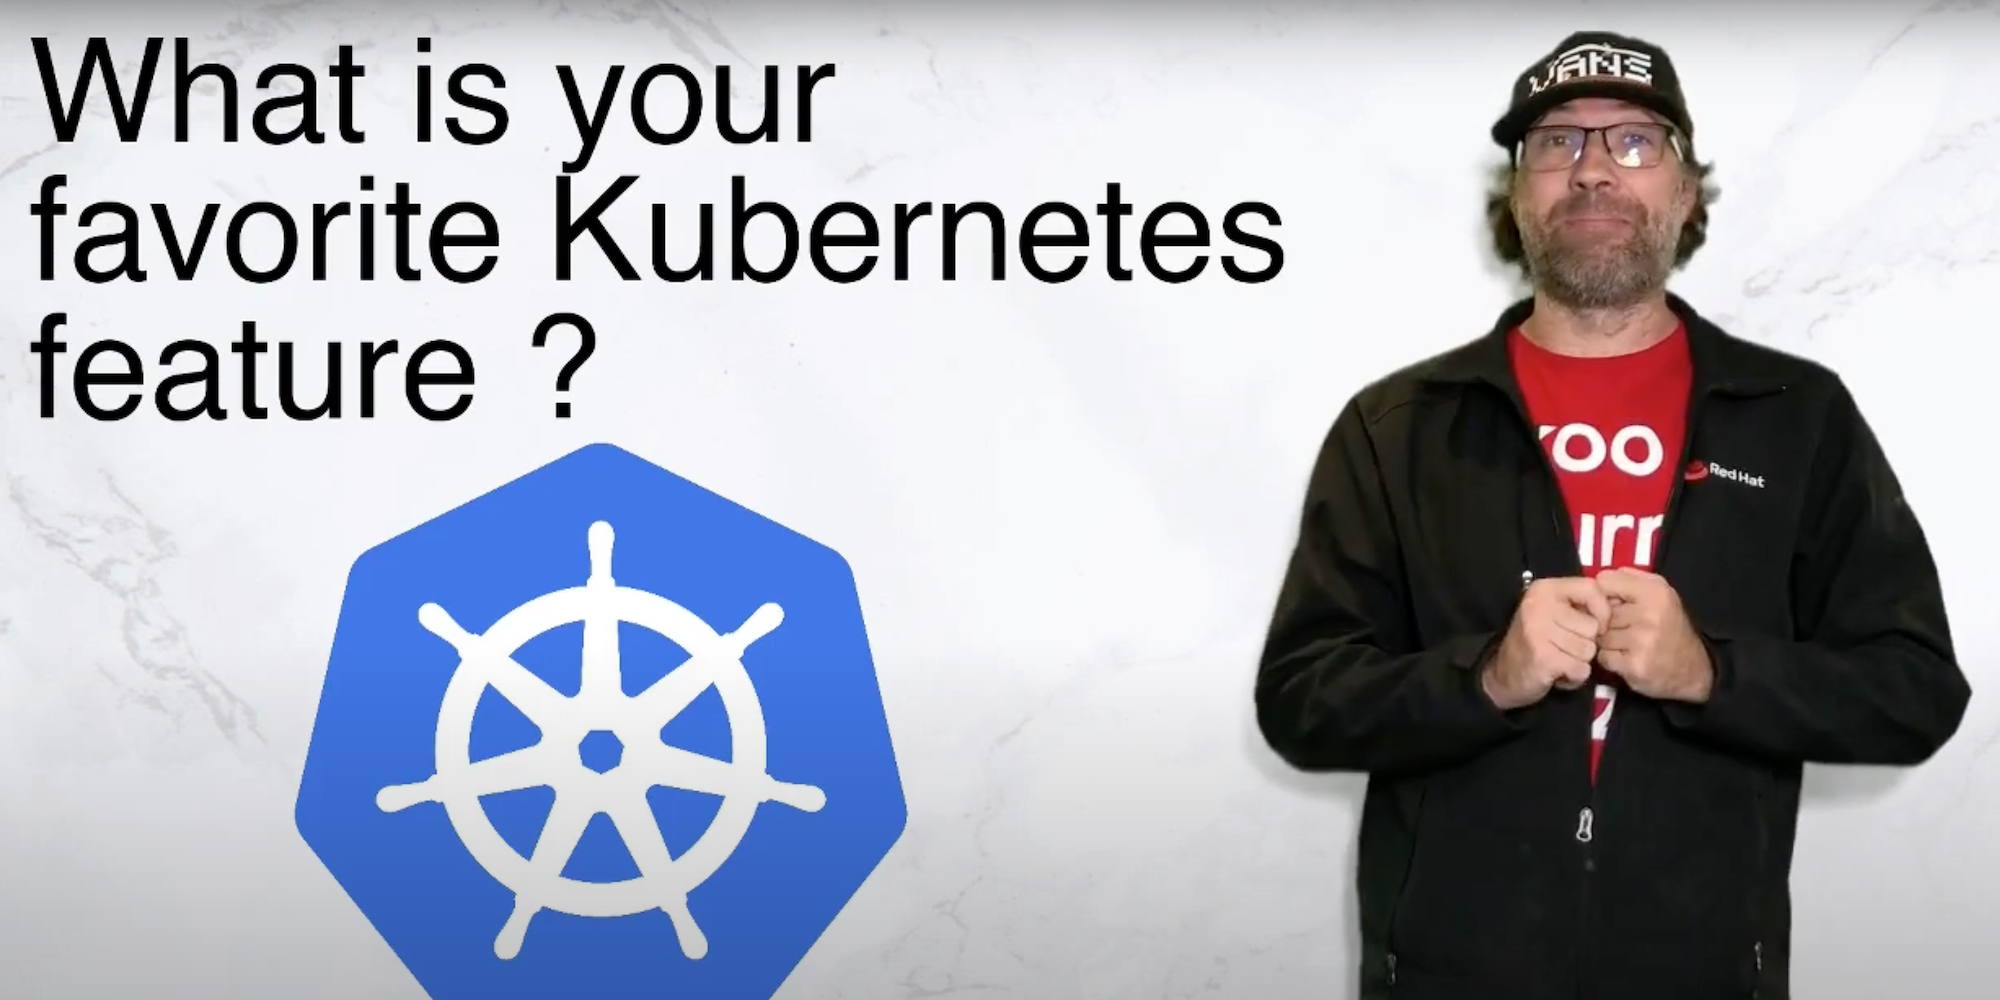 What's your favorite Kubernetes feature? Hear from the experts